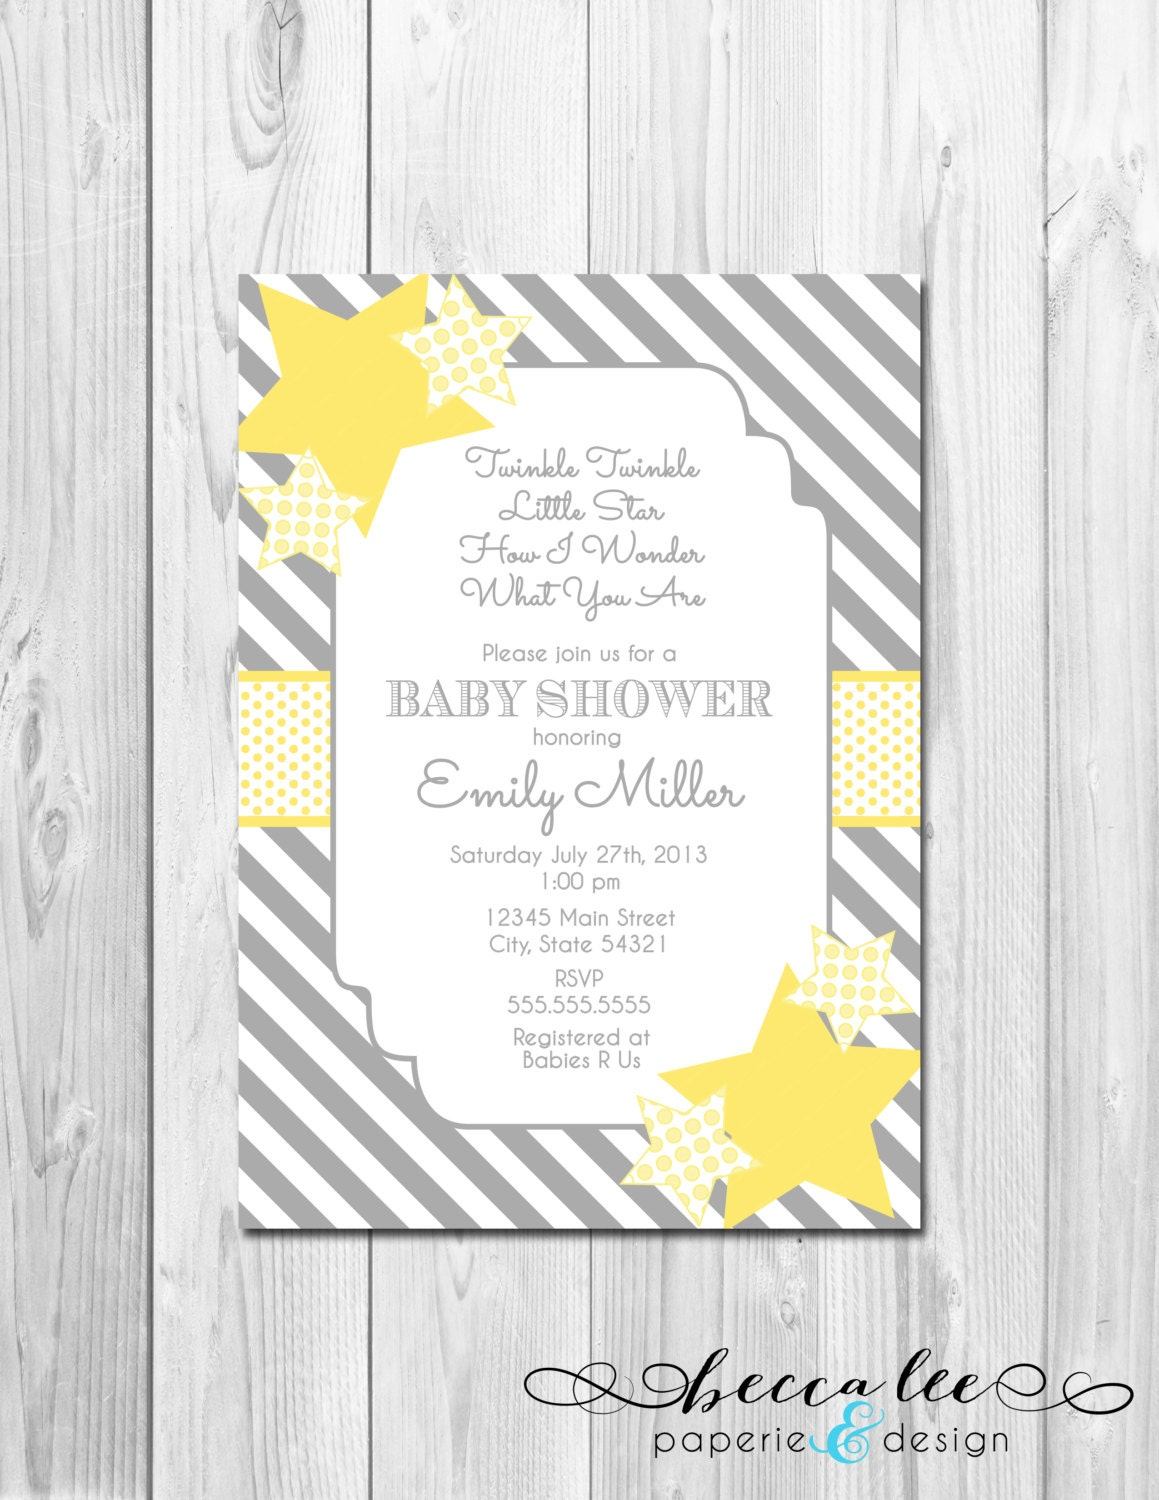 twinkle twinkle little star baby shower invitation grey and yellow